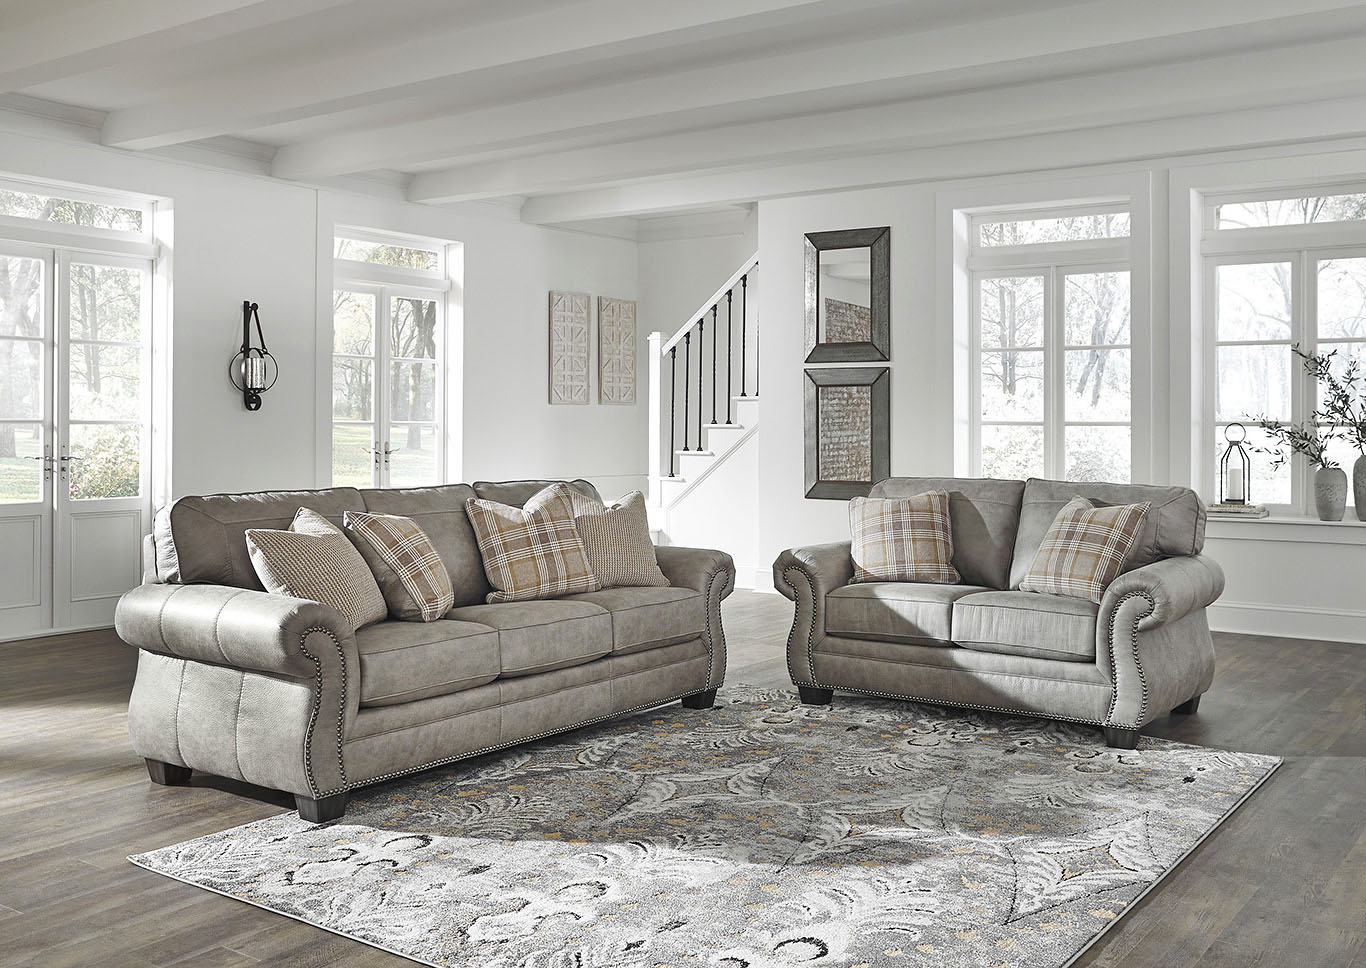 Olsberg Sofa and Loveseat,Signature Design By Ashley